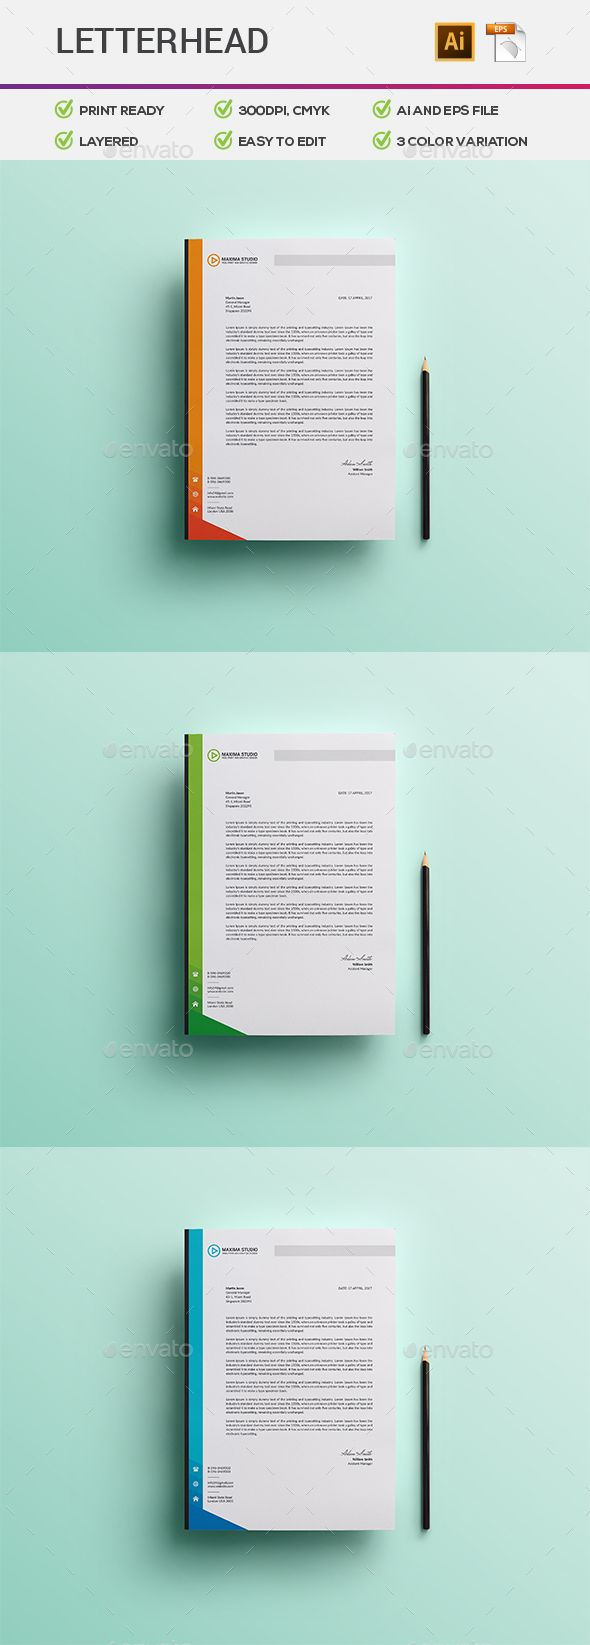 The 25 best company letterhead template ideas on pinterest letterhead spiritdancerdesigns Choice Image